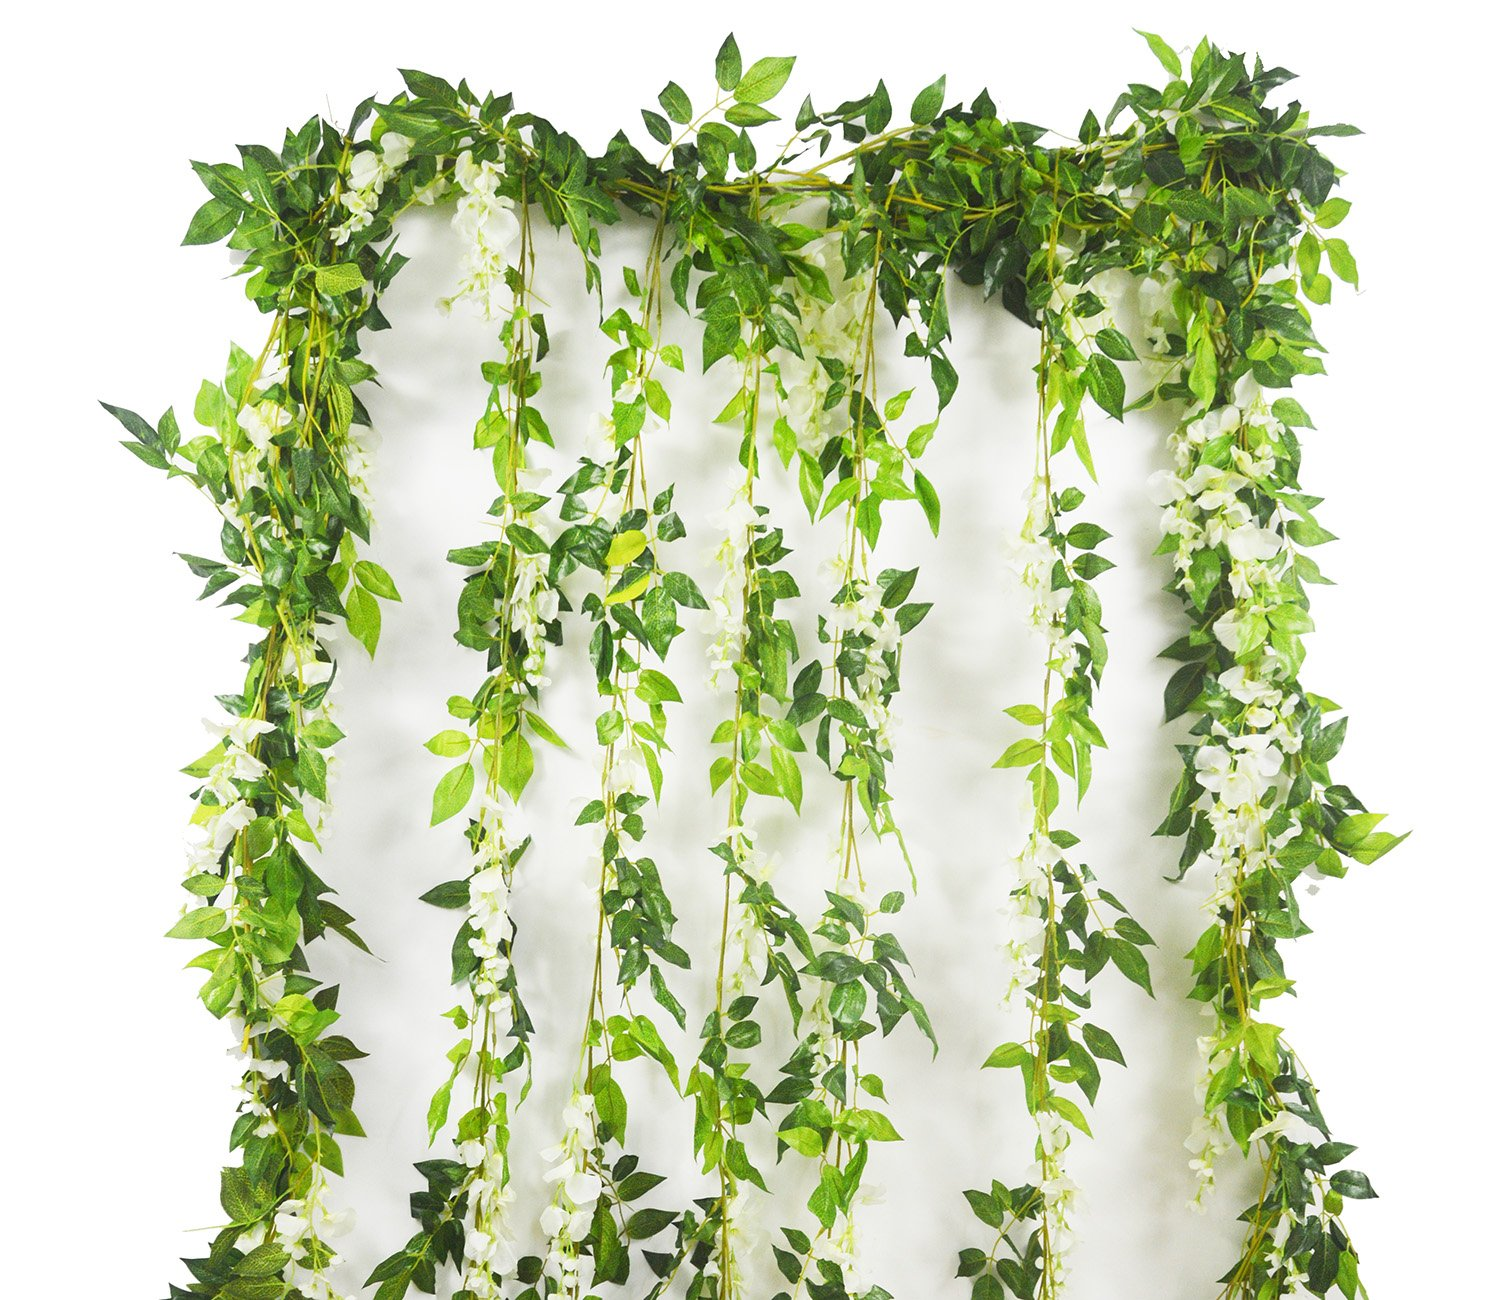 Artificial-Plants-Flowers-5pcs-312ft-Fake-Flower-Wisteria-Ivy-Vine-Faux-Plastic-Silk-Green-Leaves-Hanging-Flowers-Vine-Garland-for-Wedding-Home-Kitchen-Office-Wall-Outdoor-Outside-Party-Decor